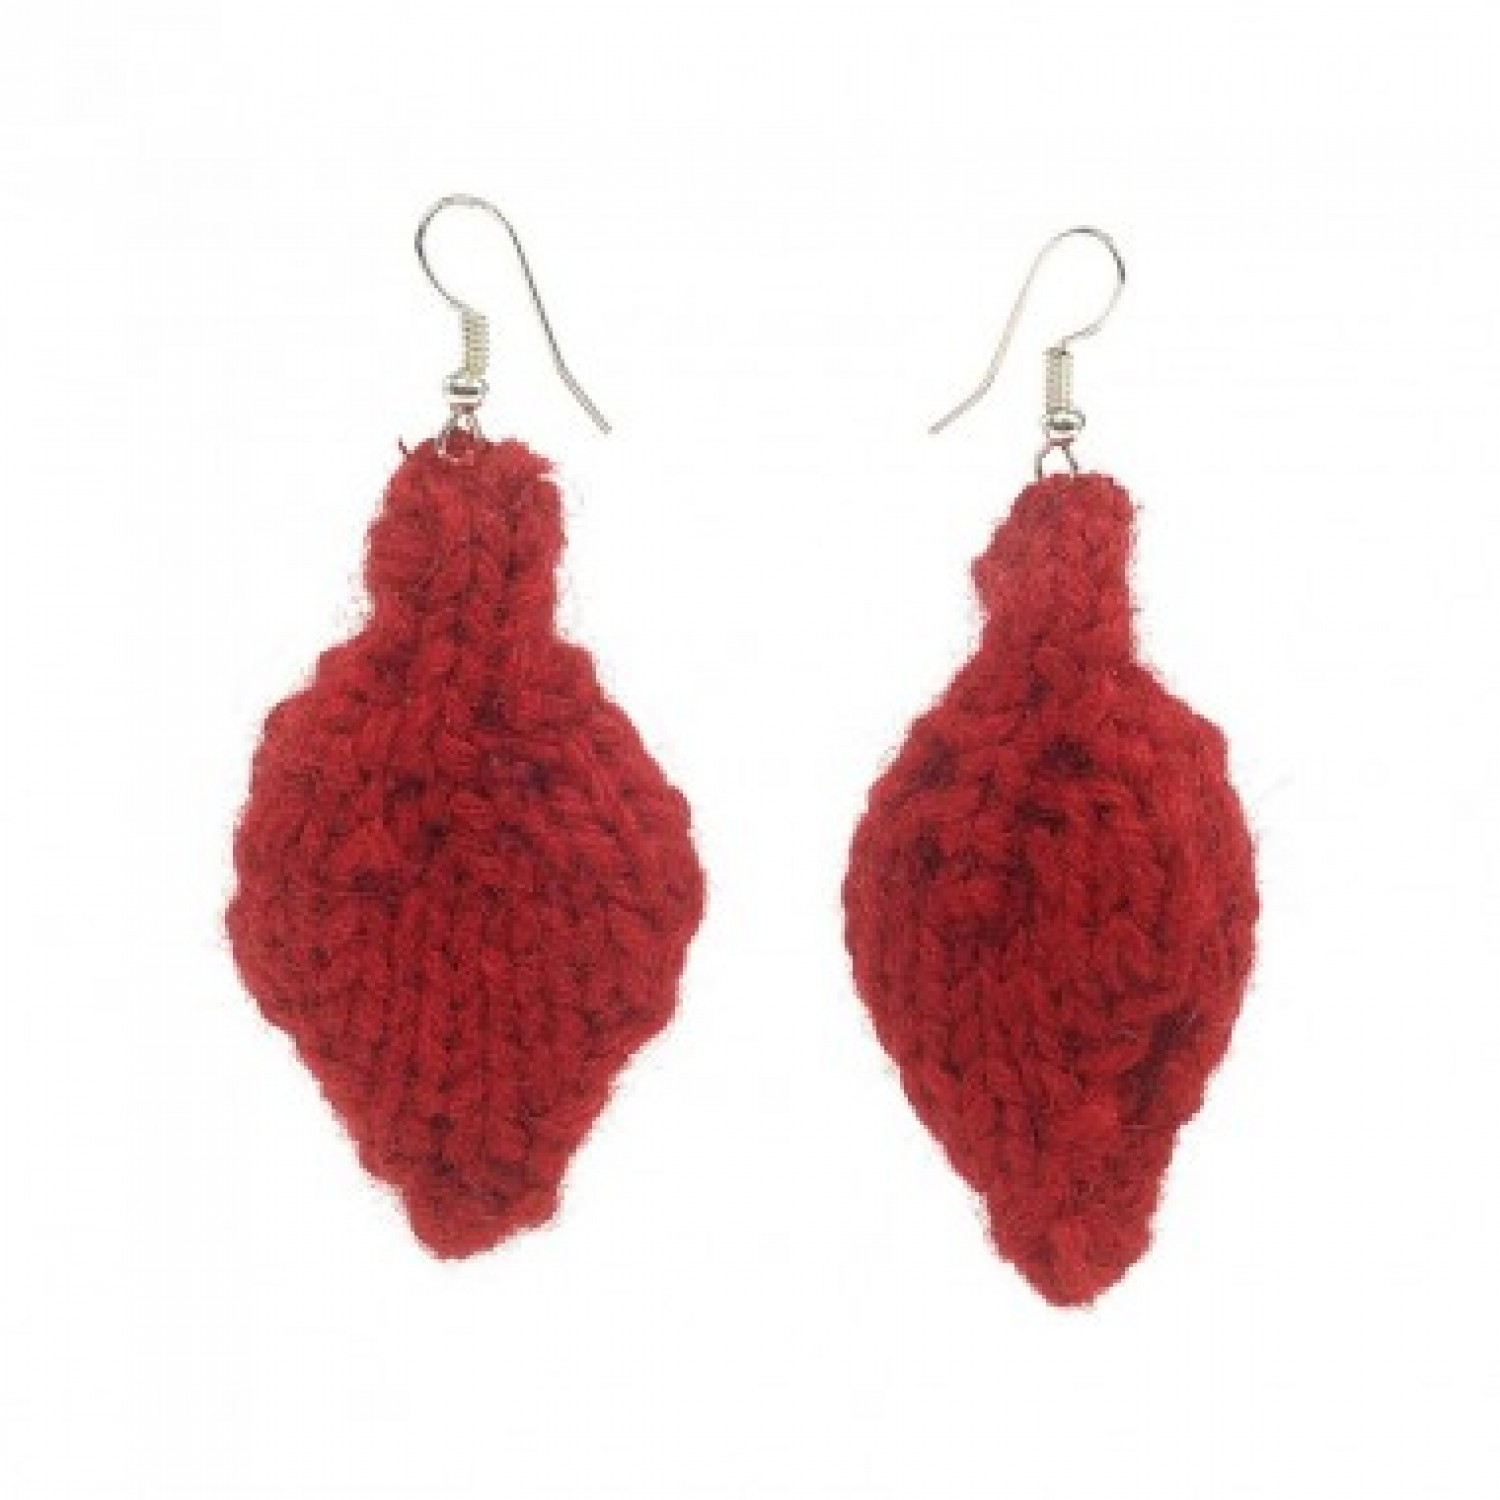 Leaf: Eco Earrings made recycled red wool | Marron Rouge